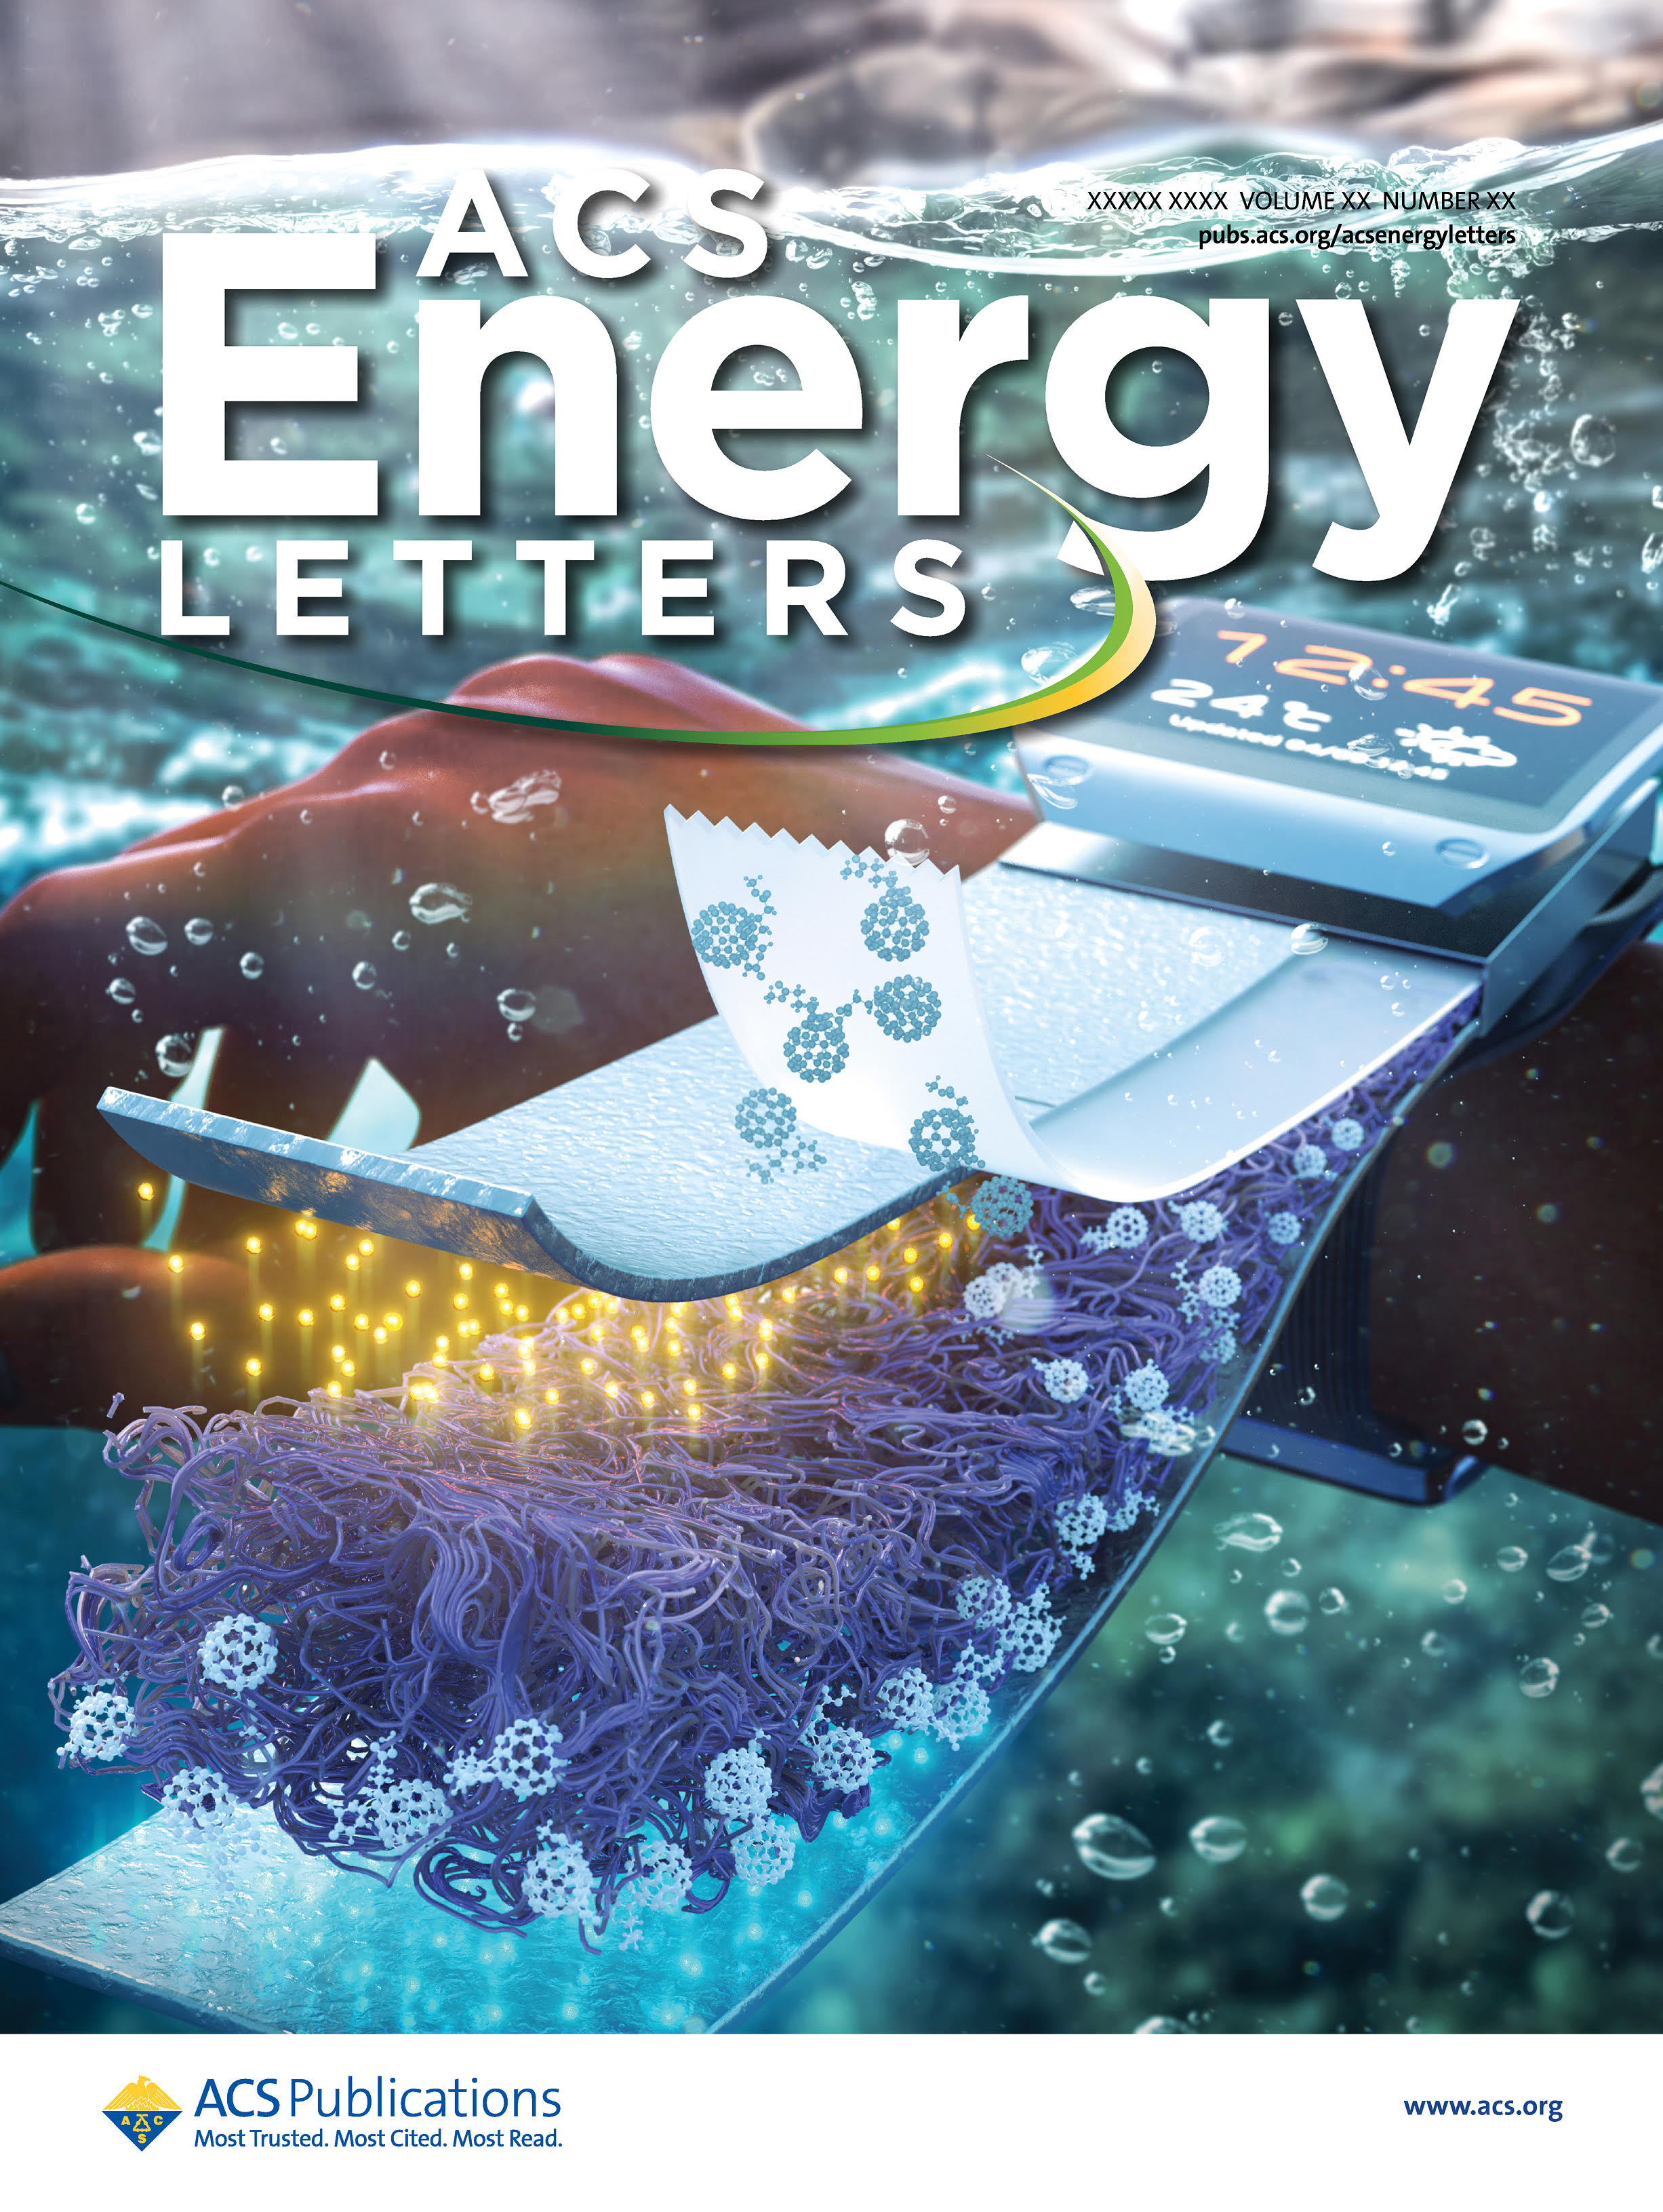 ACS Energy Letters journal cover